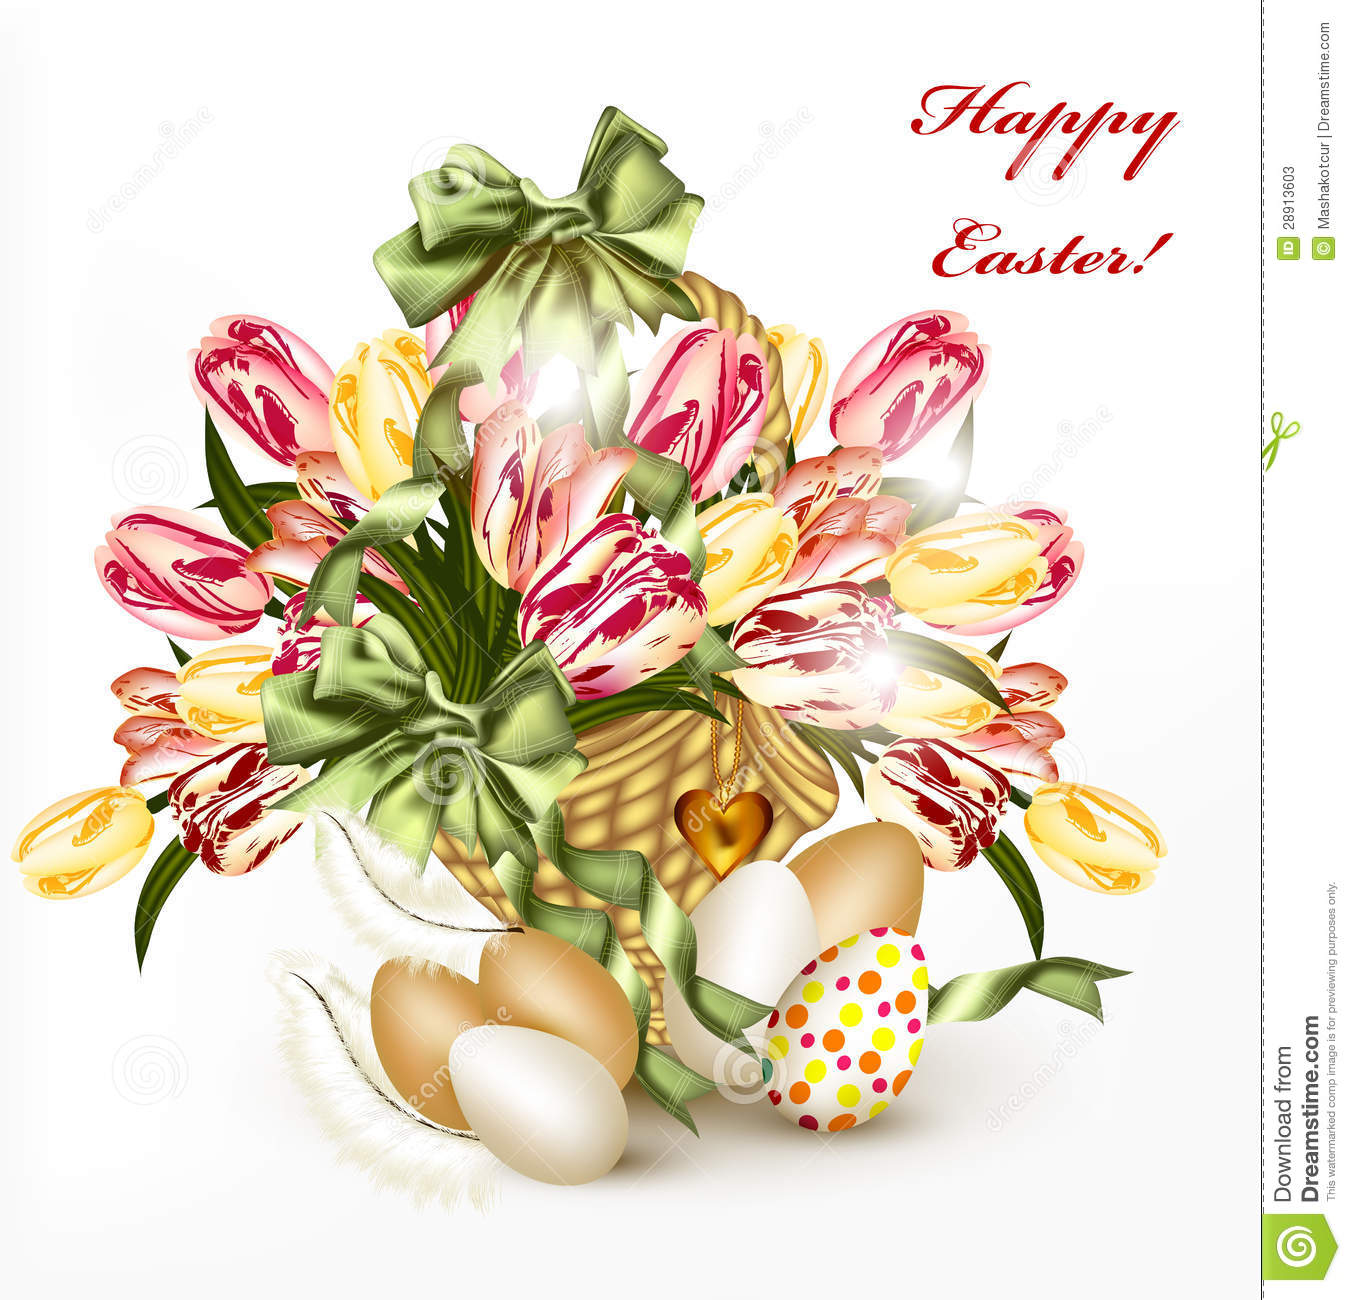 Easter greeting photo album weddings center